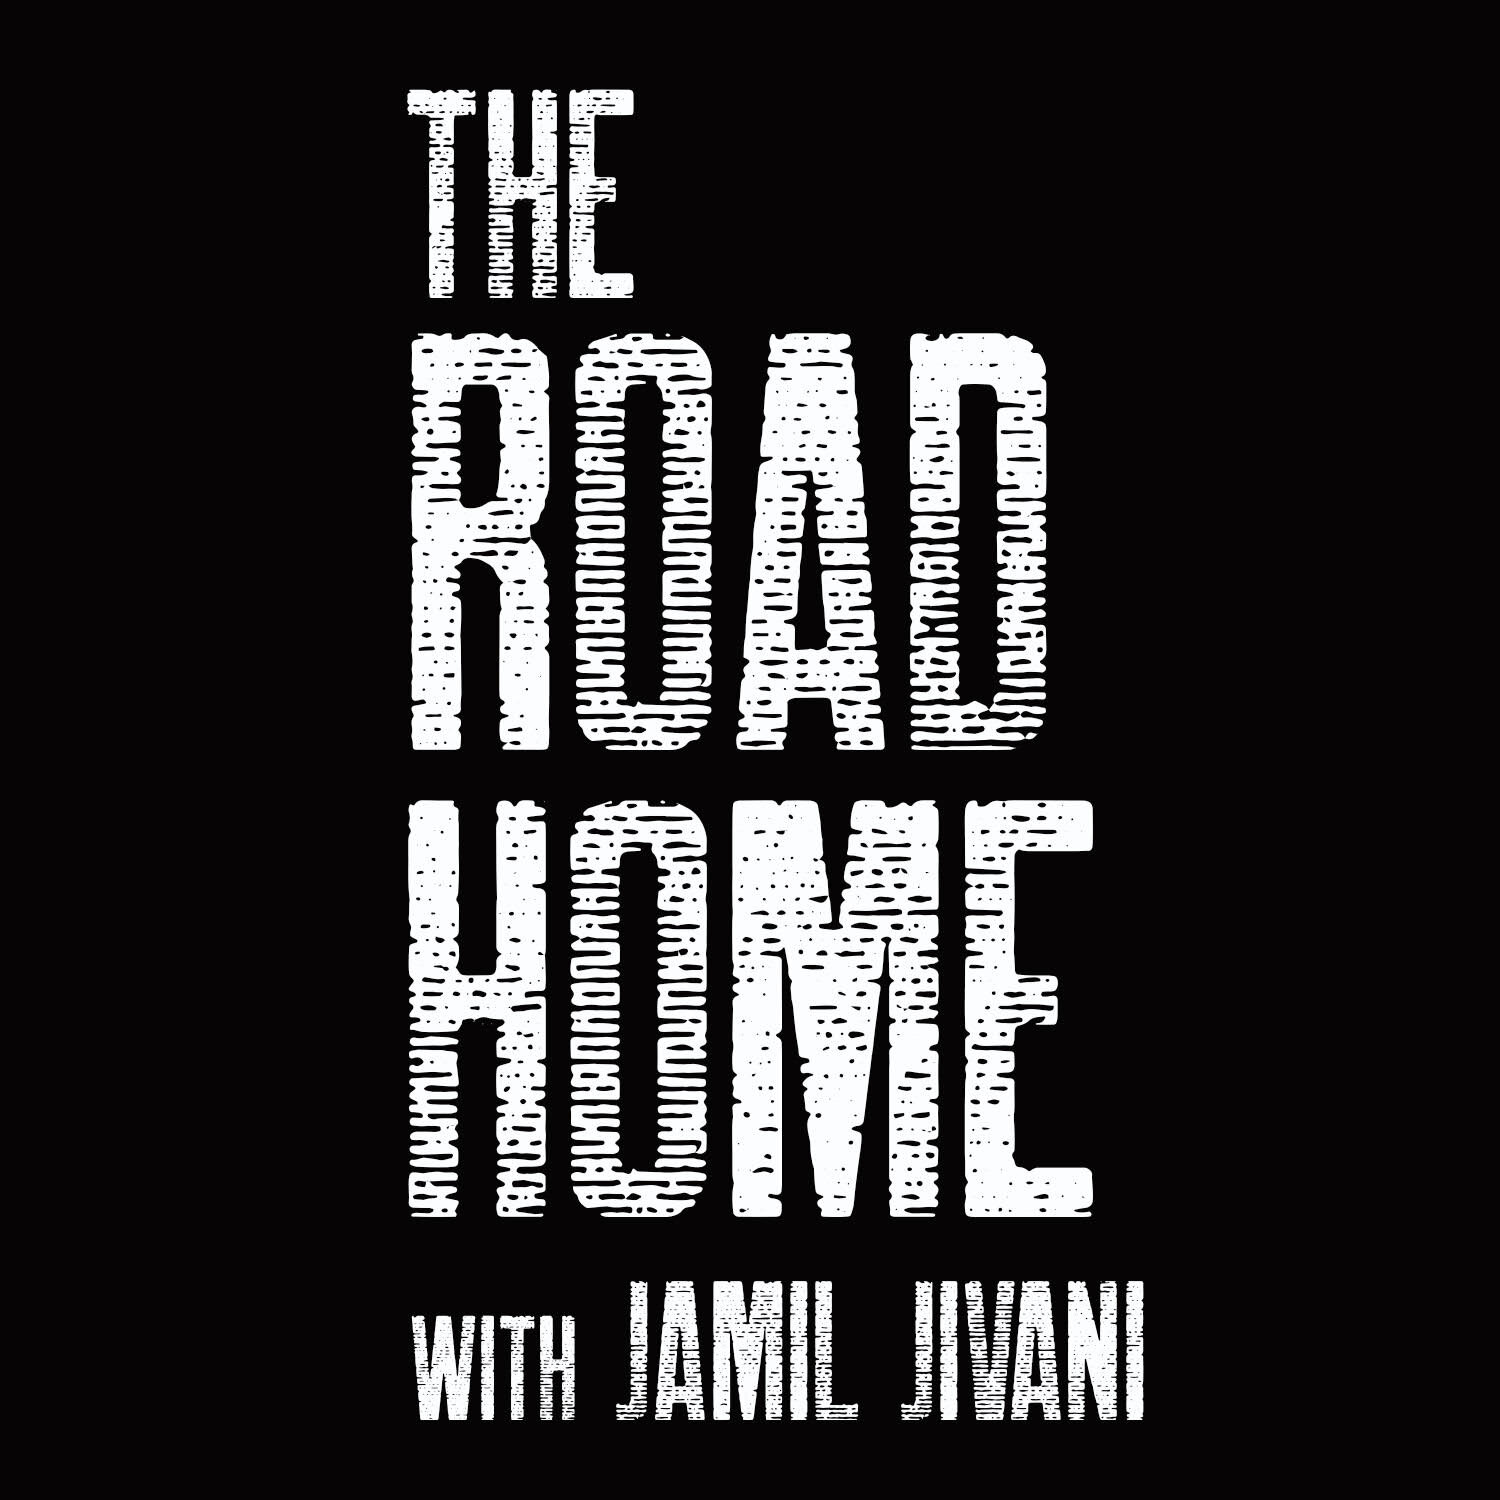 Podcast - Listen to any episode of The Road Home with Jamil Jivani, which features a wide variety of guests and subject matter.